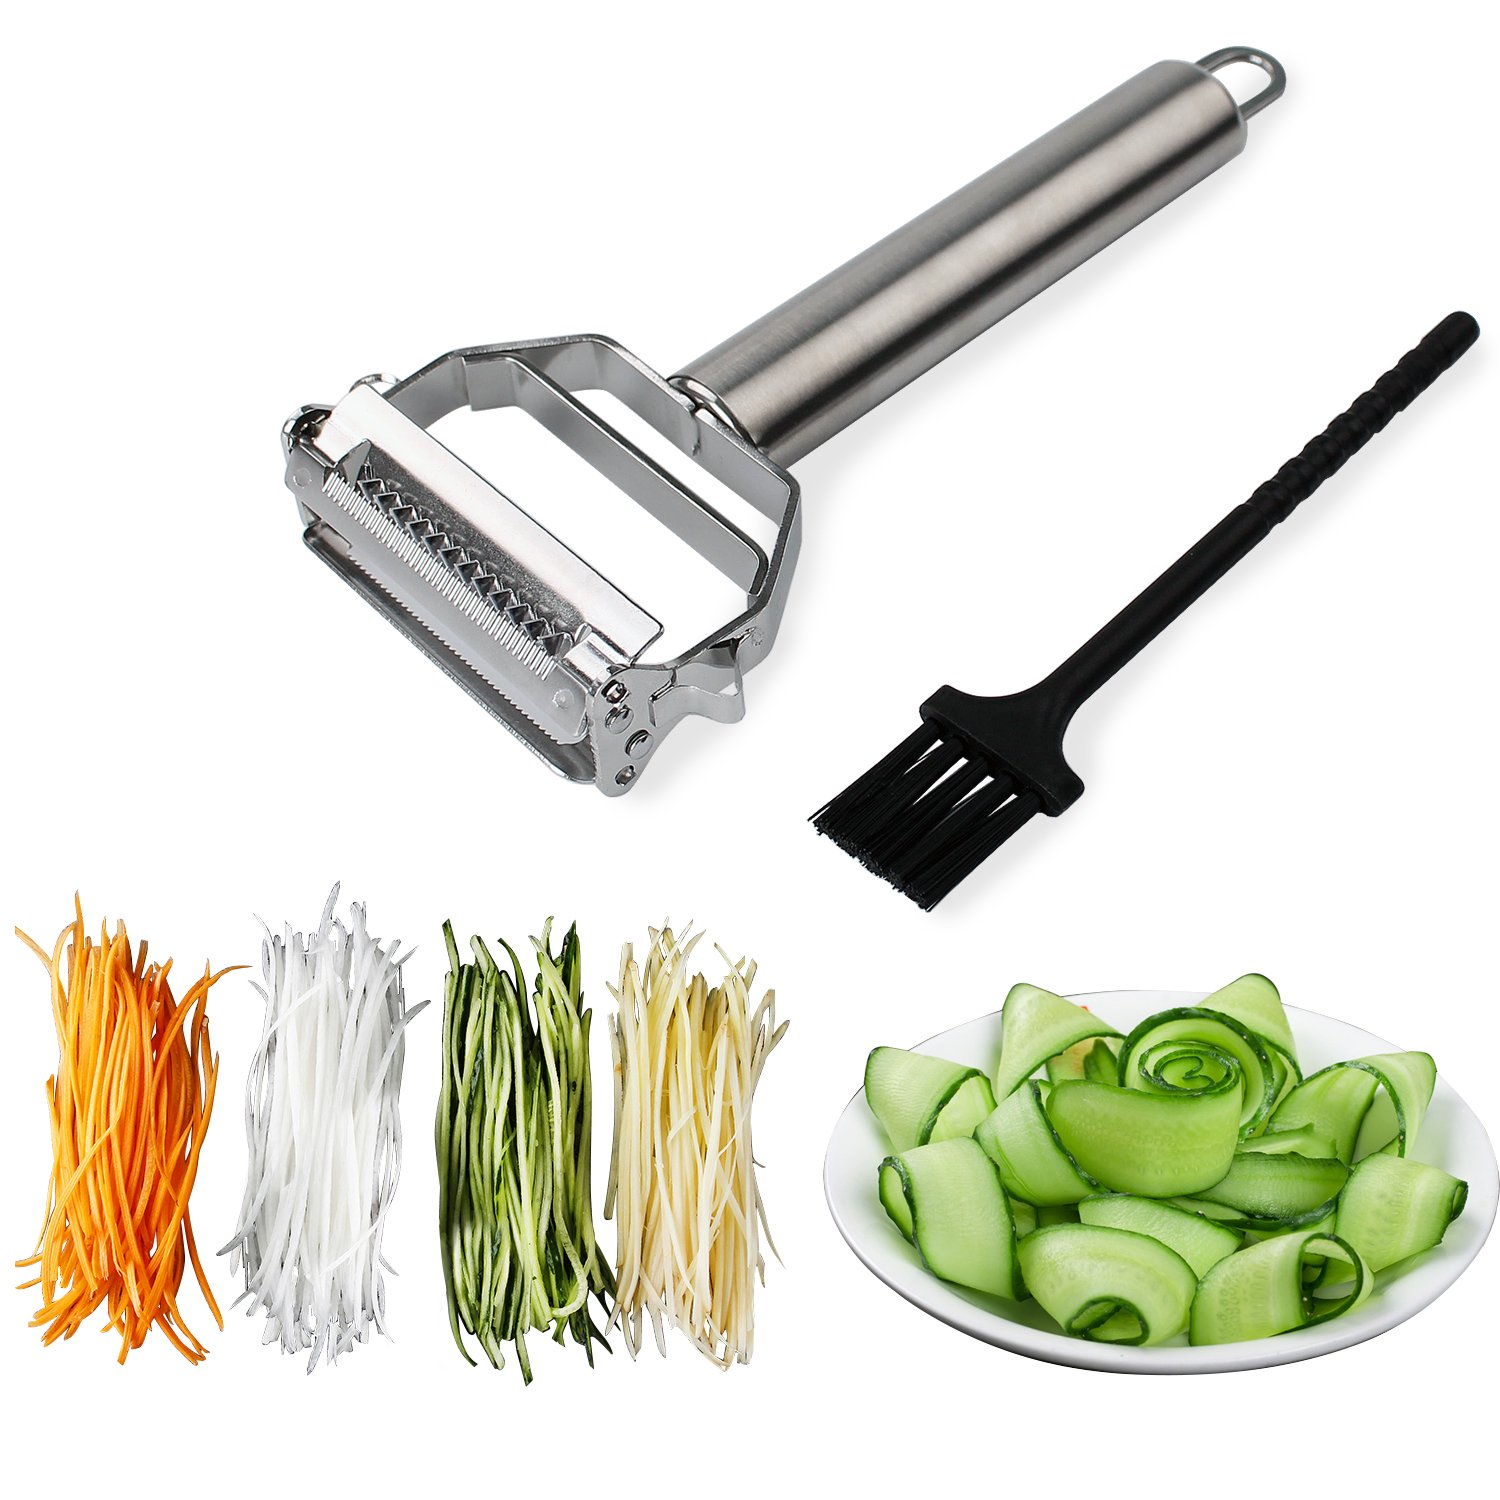 Sunkuka Julienne Stainless Cleaning Vegetable